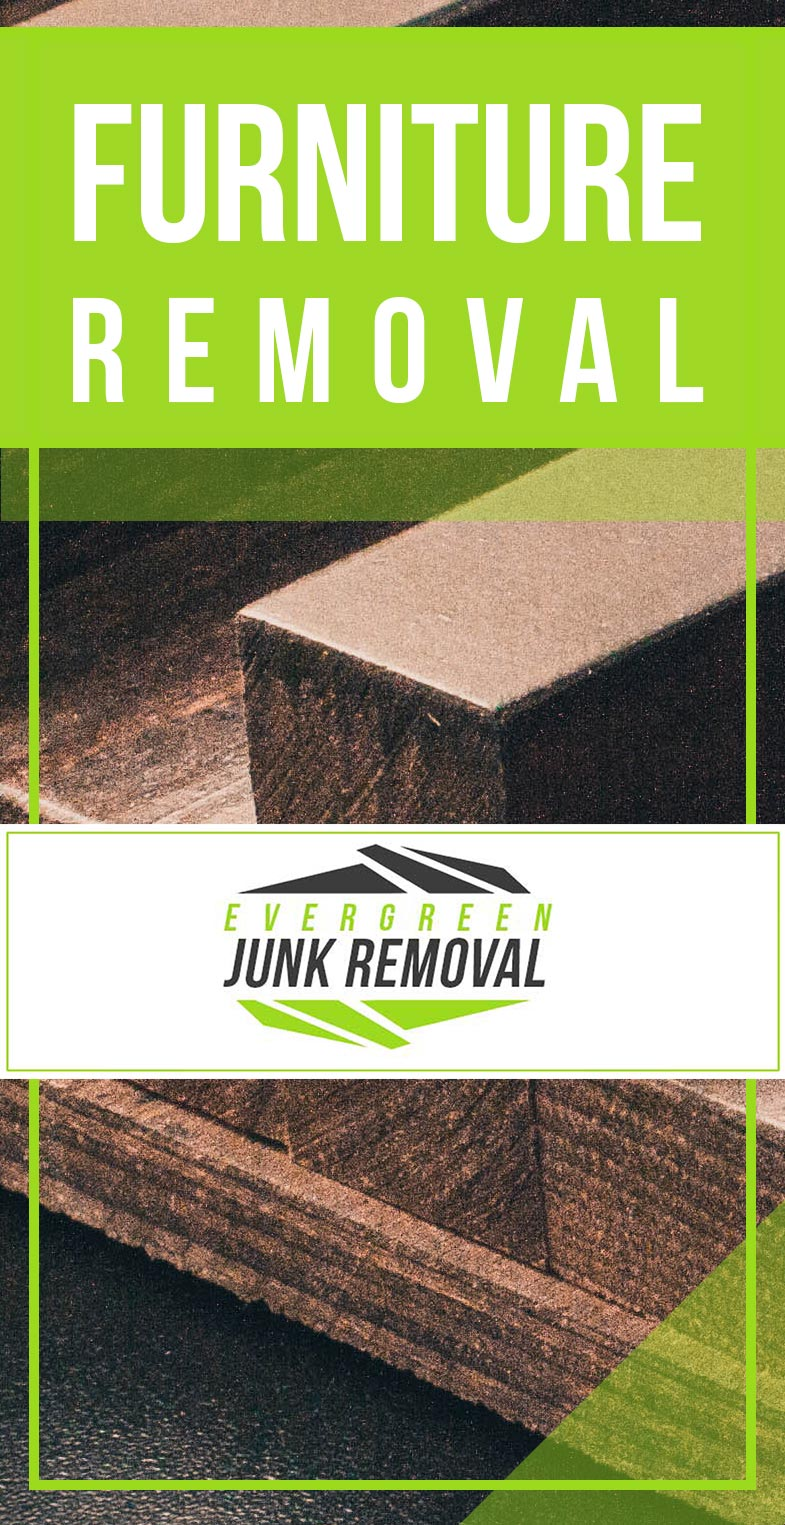 Junk Removal Riviera Beach Furniture Removal